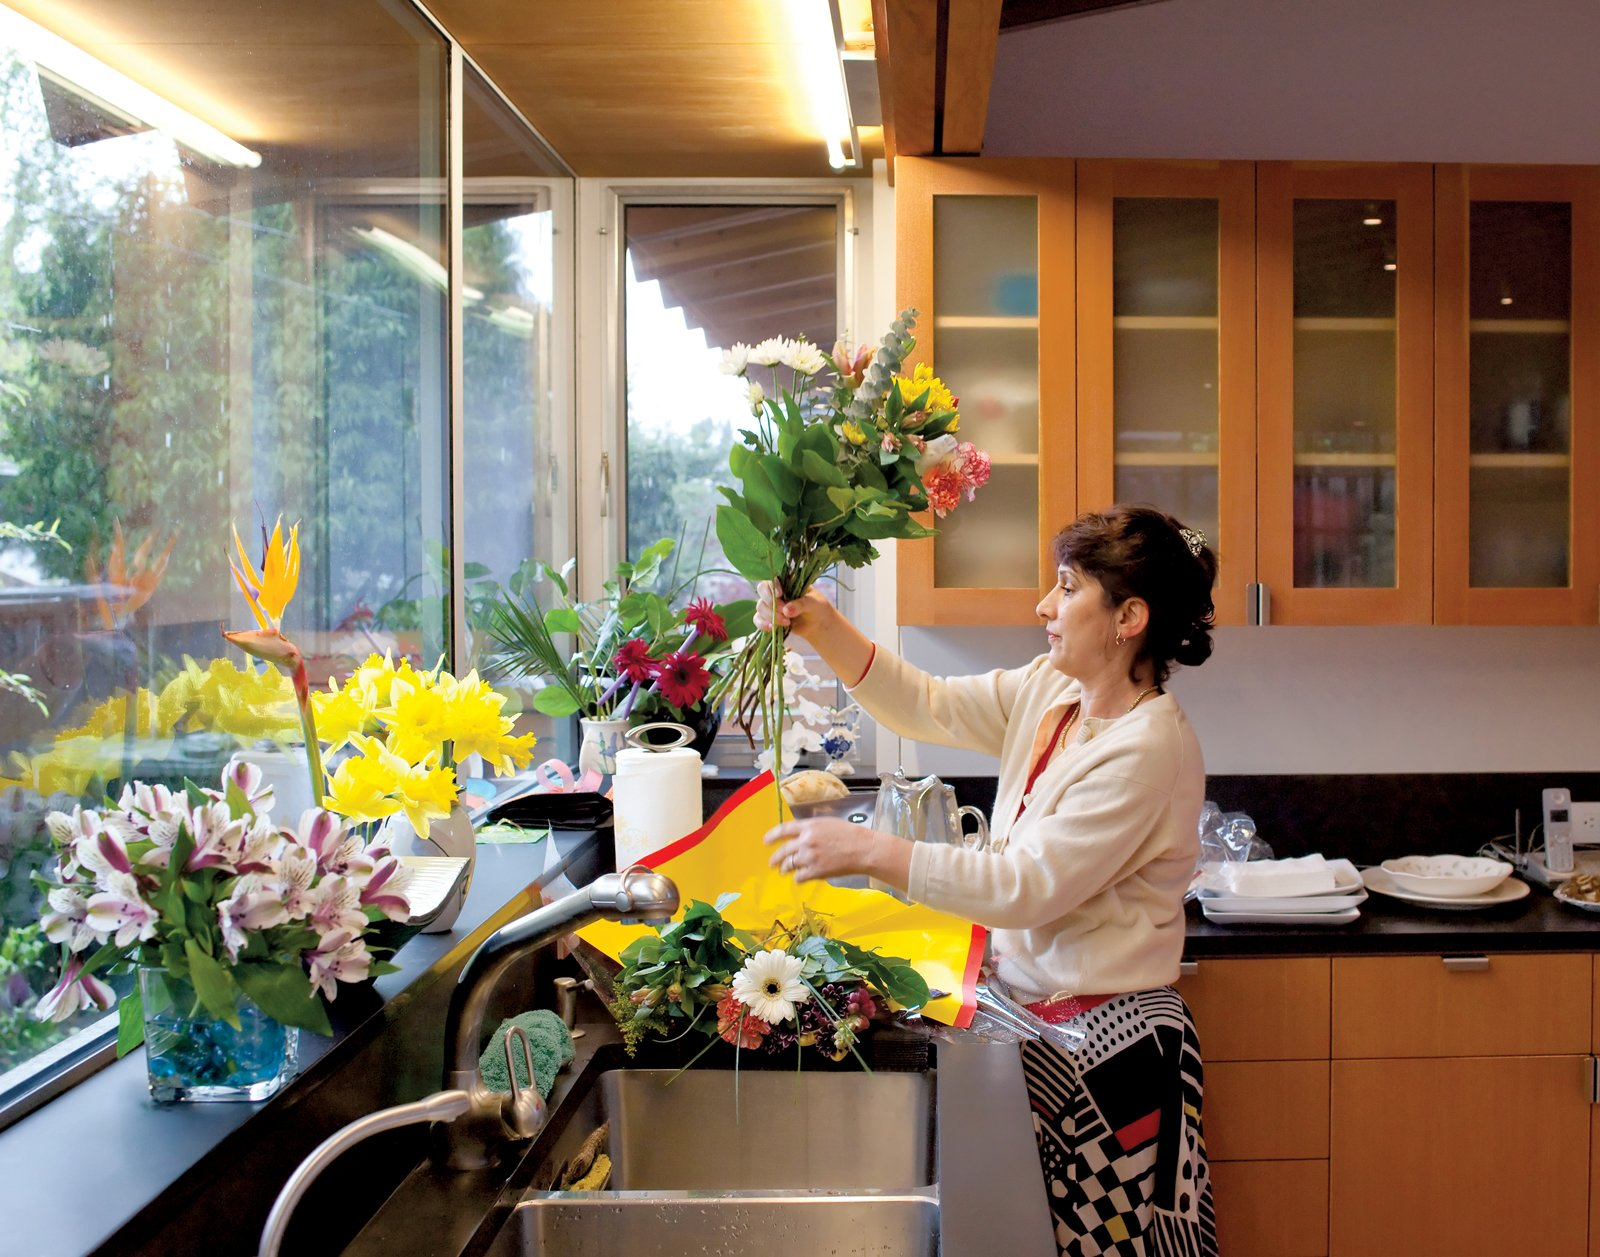 Kitchen and Wood Cabinet Fashandi arranges flowers and greenery for Persian New Year, which is a celebration of spring.  Photo 6 of 16 in Family Matters